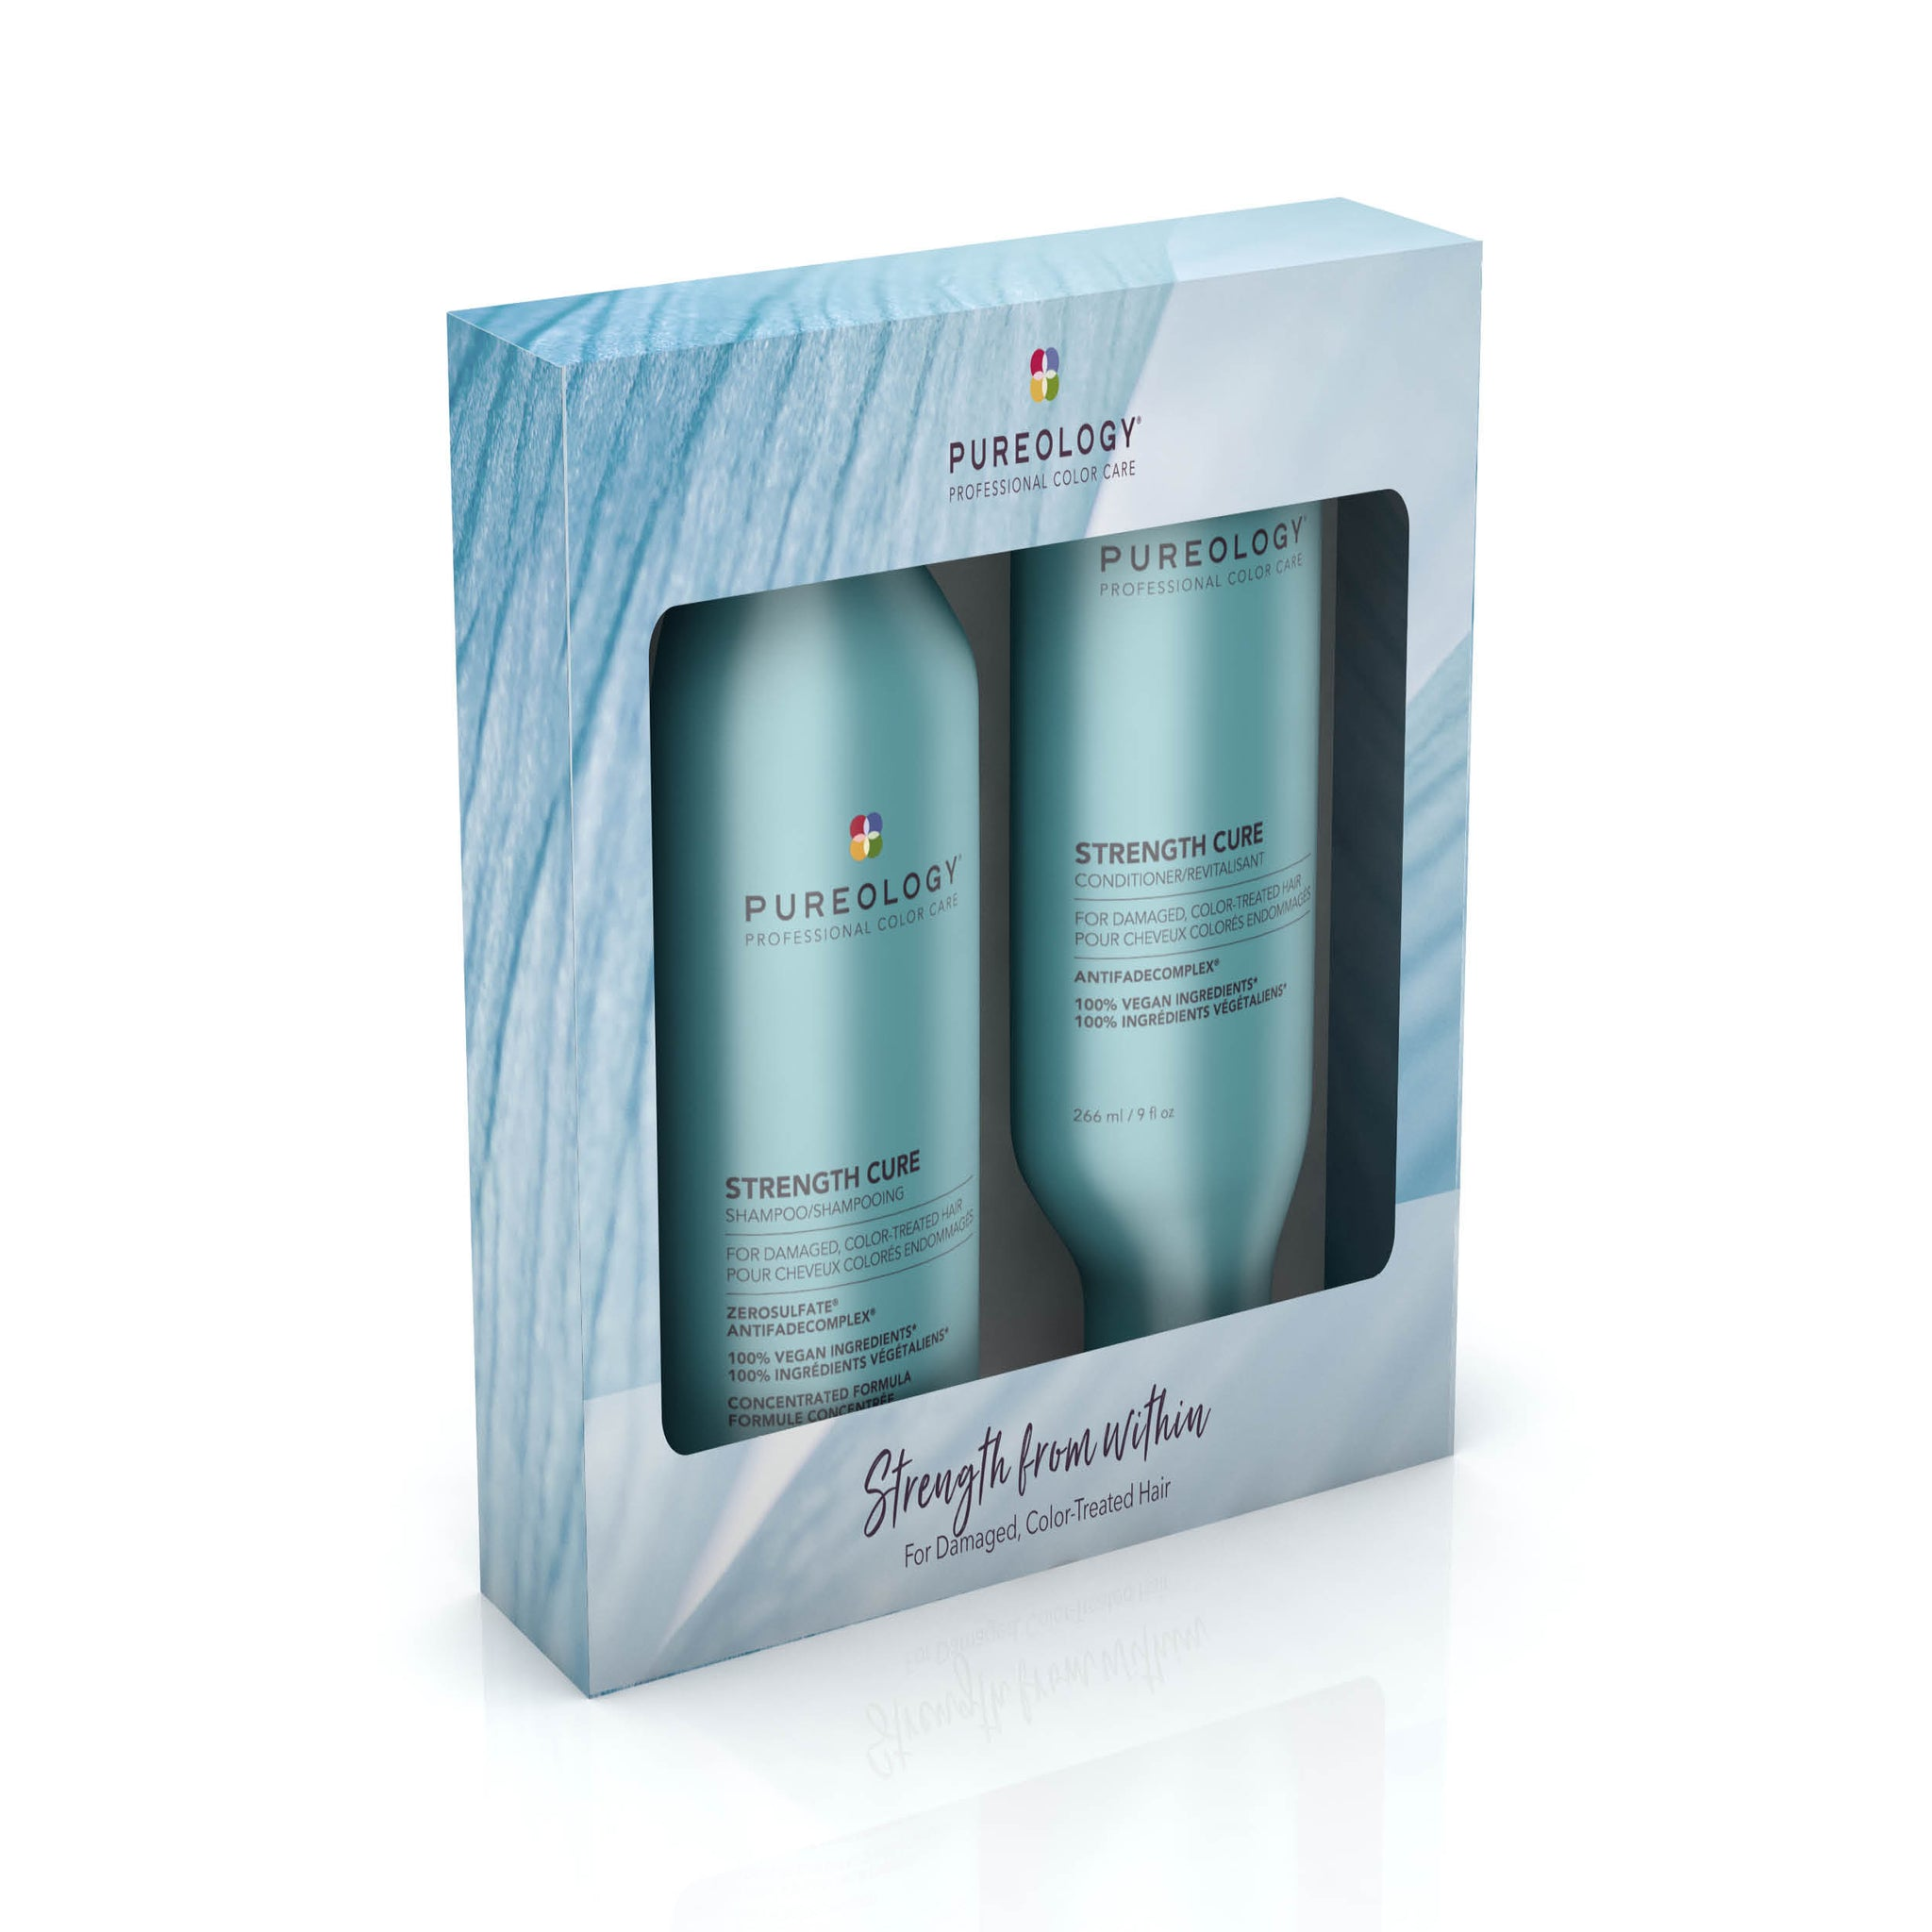 Pureology Strenght Cure Duo Gift Set